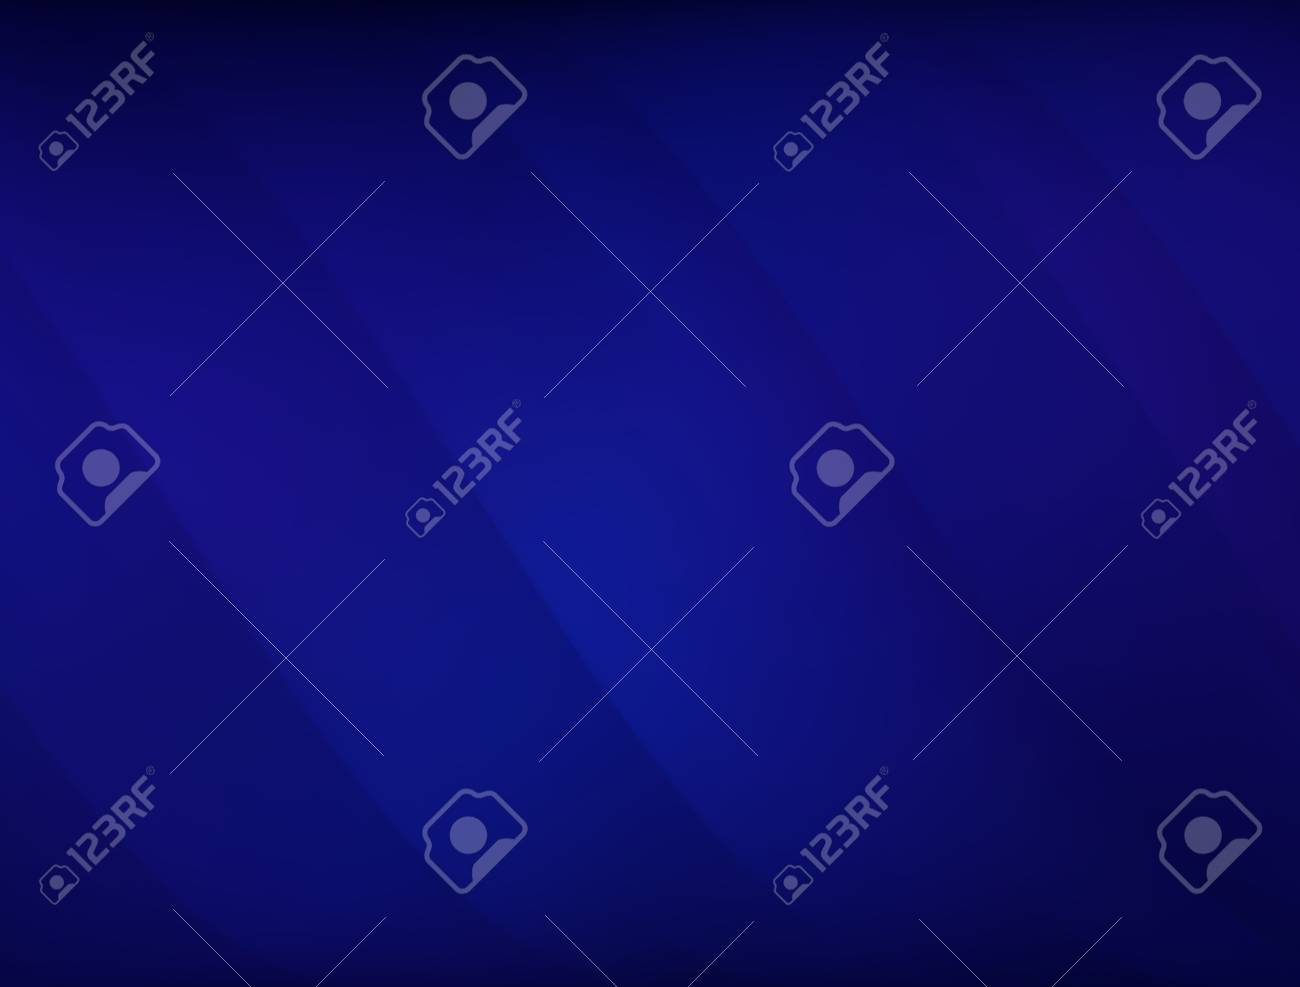 Abstract Dark Blue Background Design Element Backdrop For Artworks And Posters Stock Photo